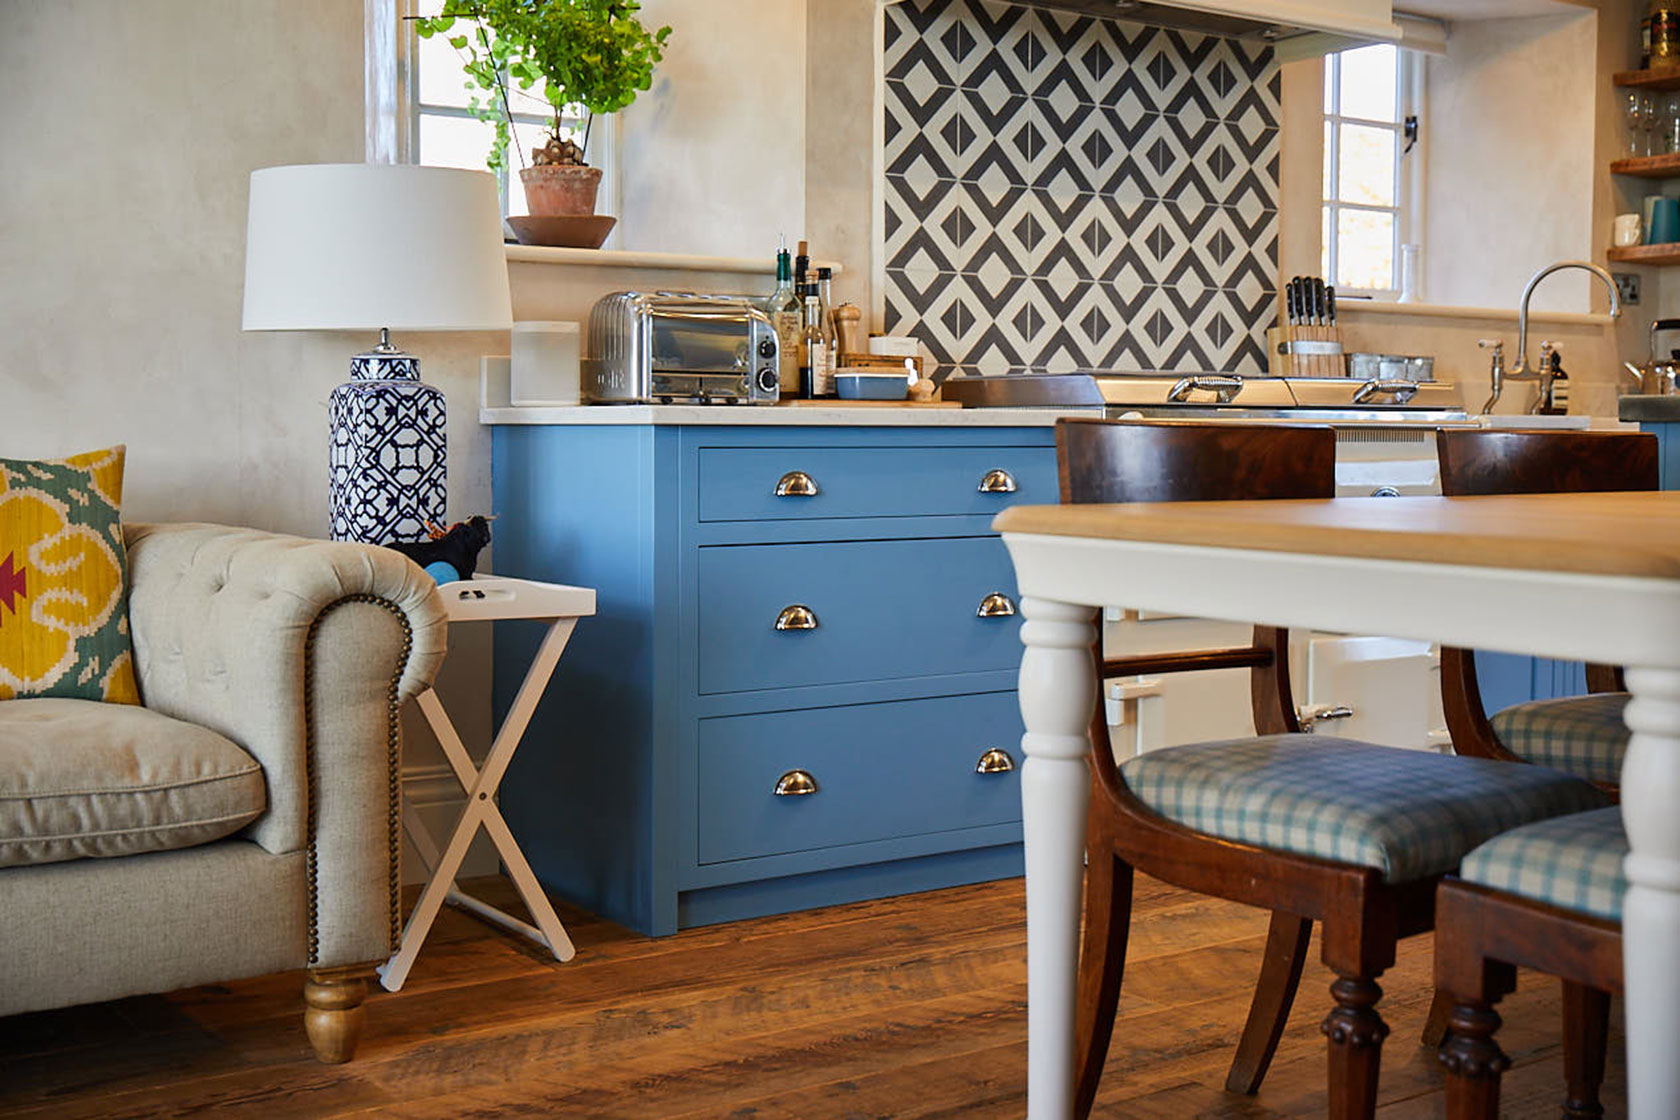 Light blue kitchen pan drawers with cream farmhouse table